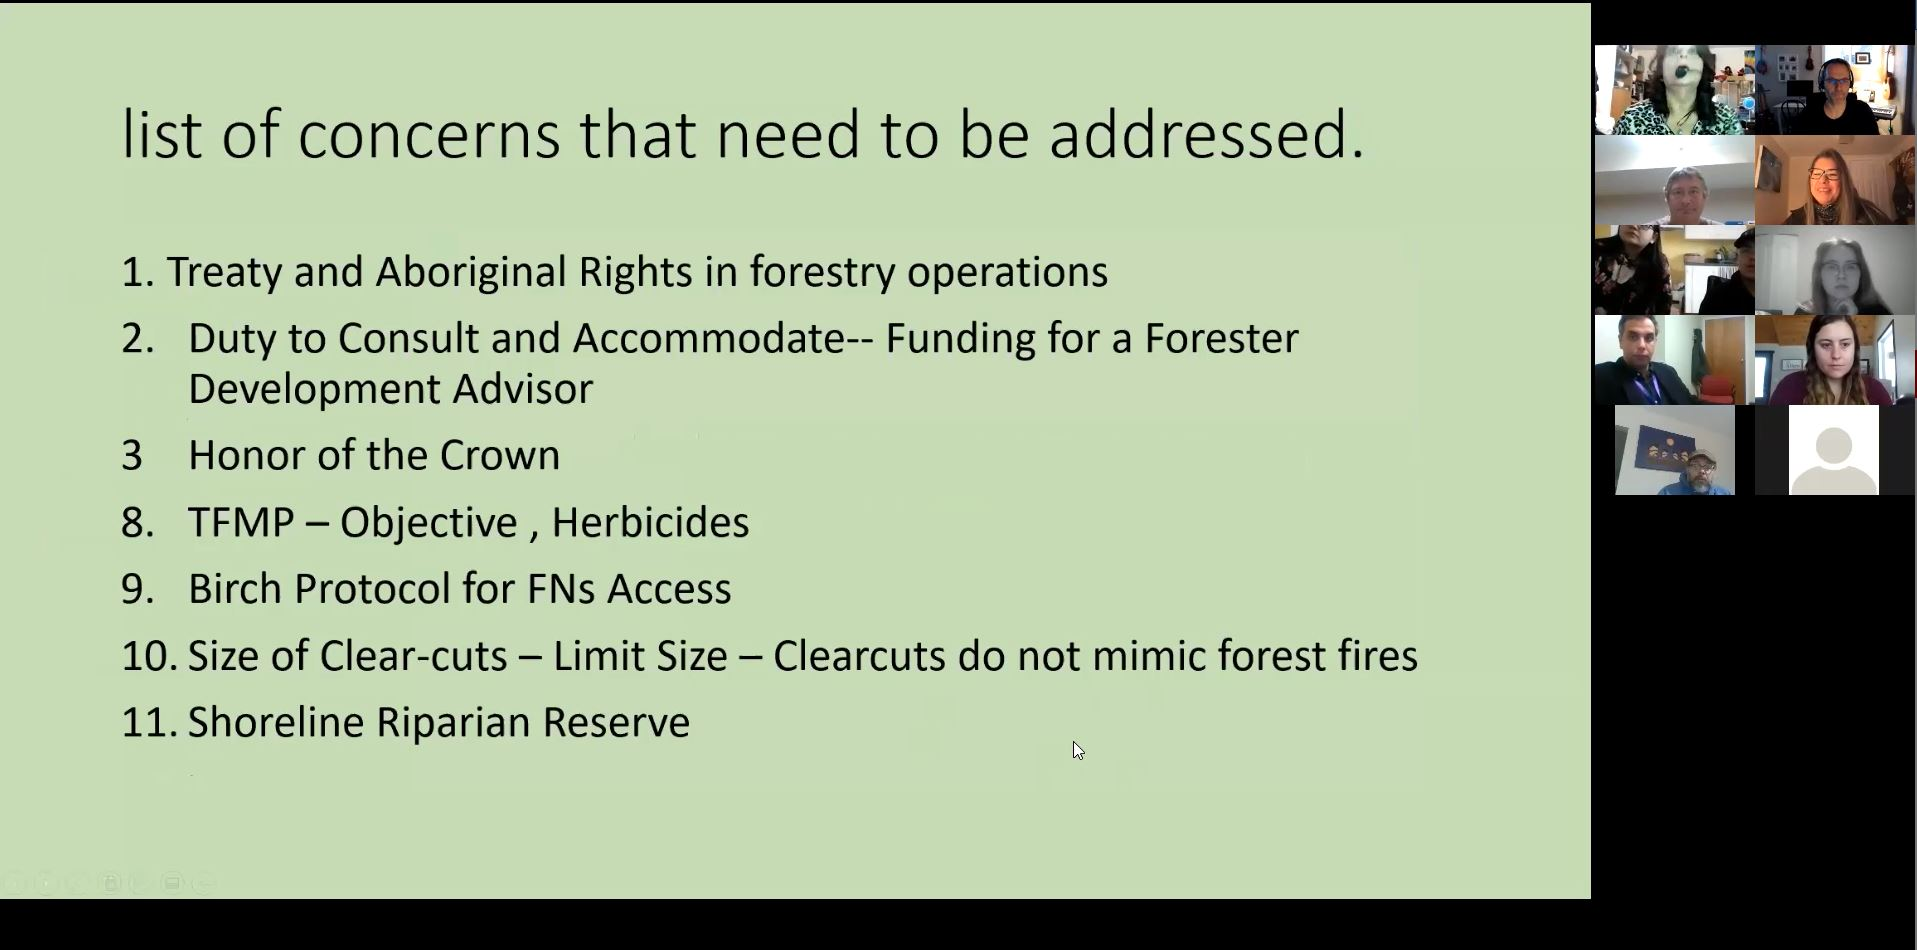 November 2020 - Community concerns with forestry